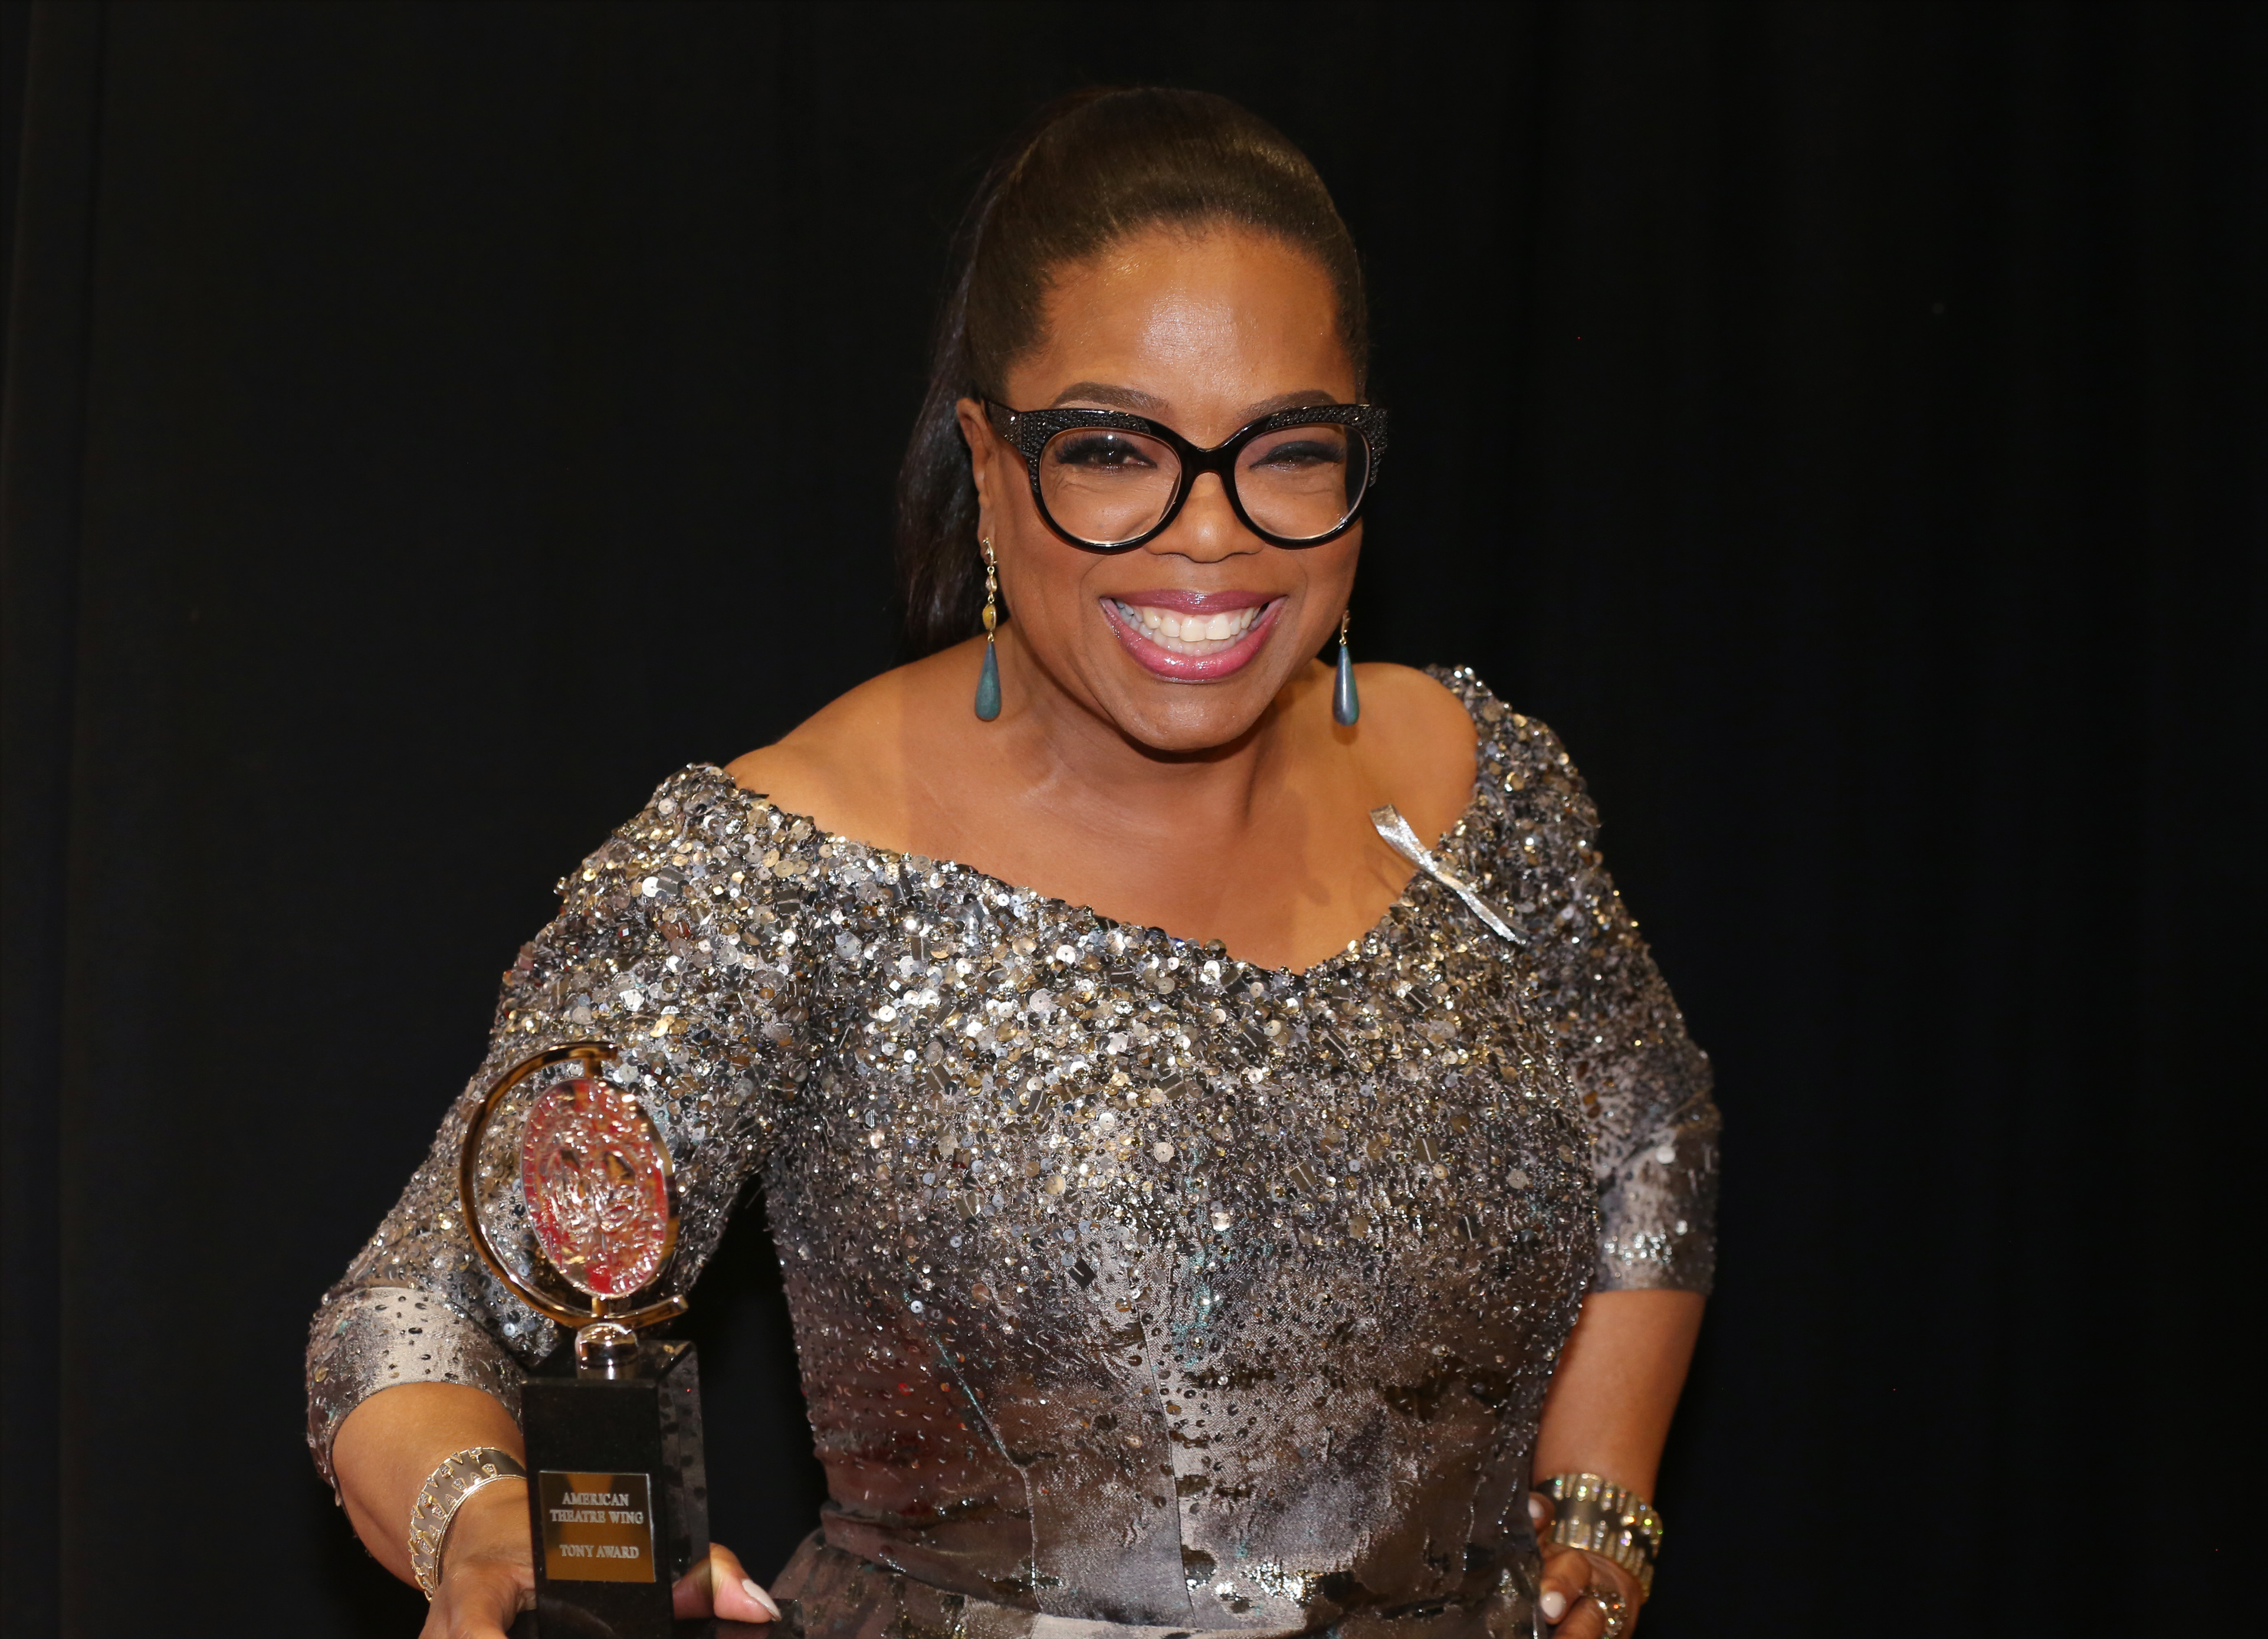 Oprah Winfrey in the press room for the 70th Annual Tony Awards at the Beacon Theater on June 12, 2016 in New York City.